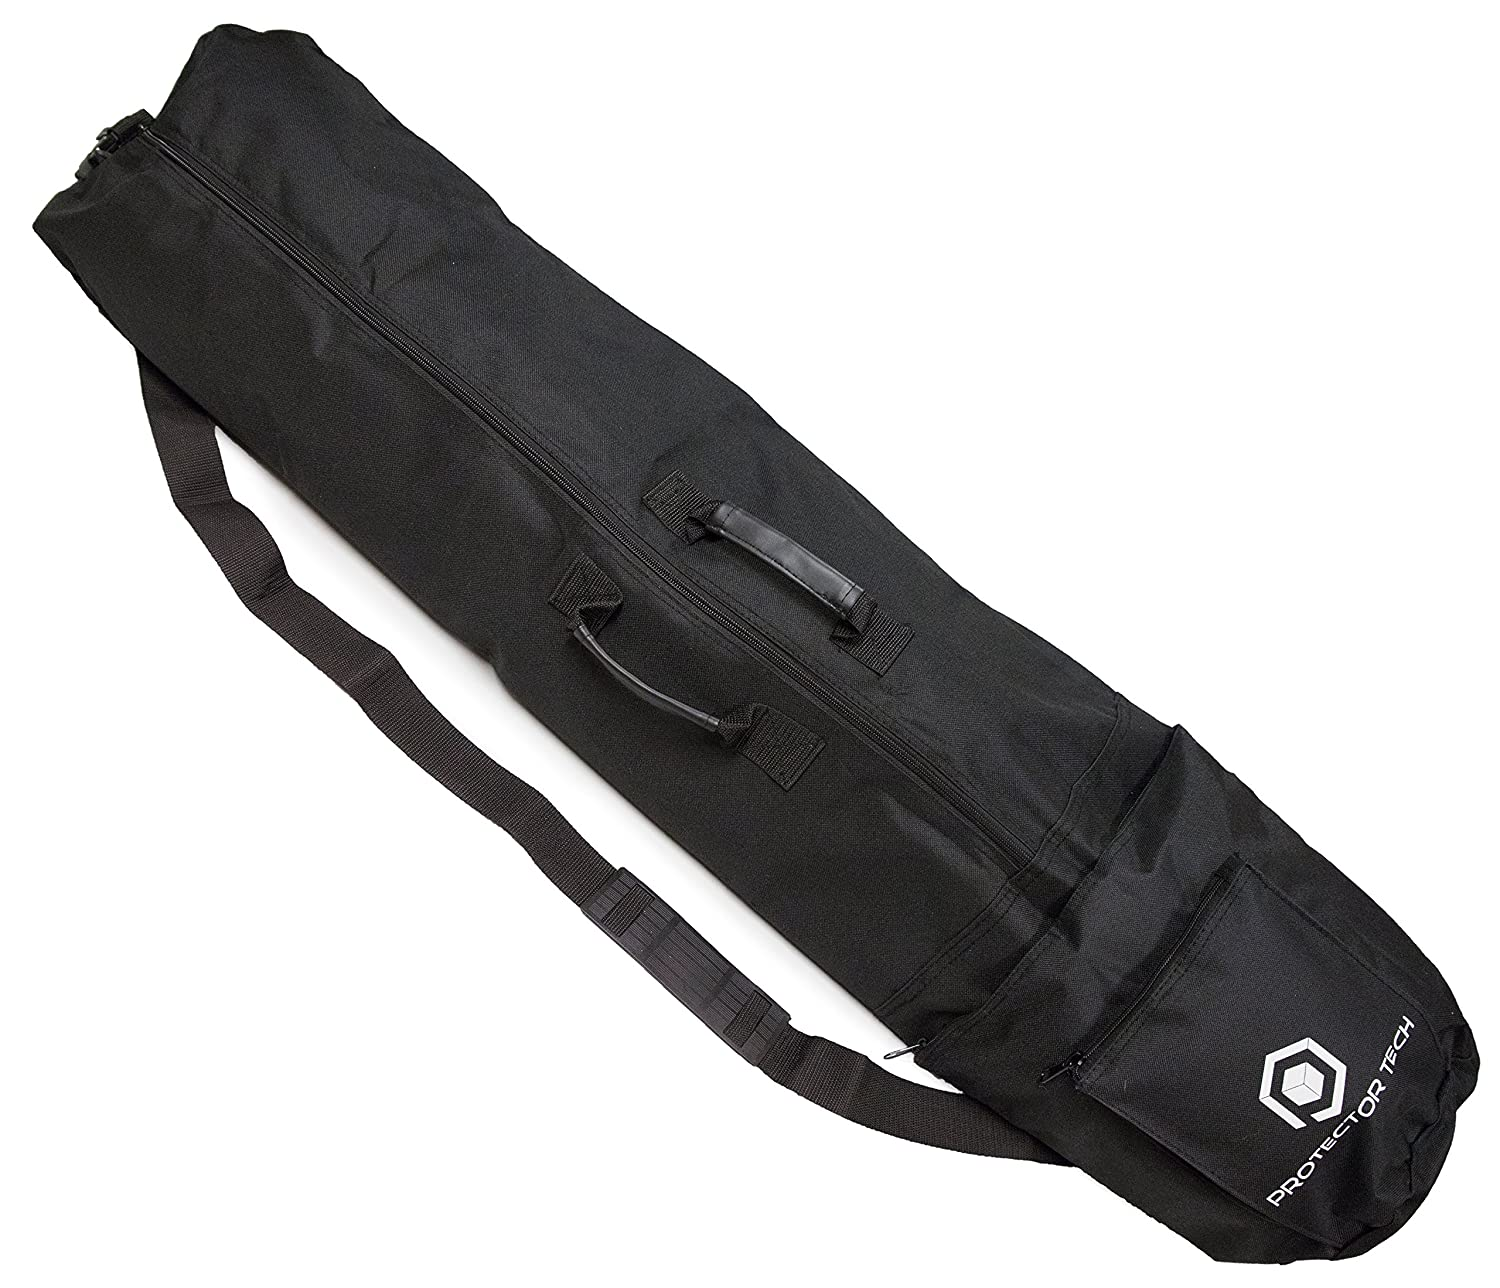 HD Bag for Metal Detector or microphone / speaker stand - 116 cm long Protector Tech